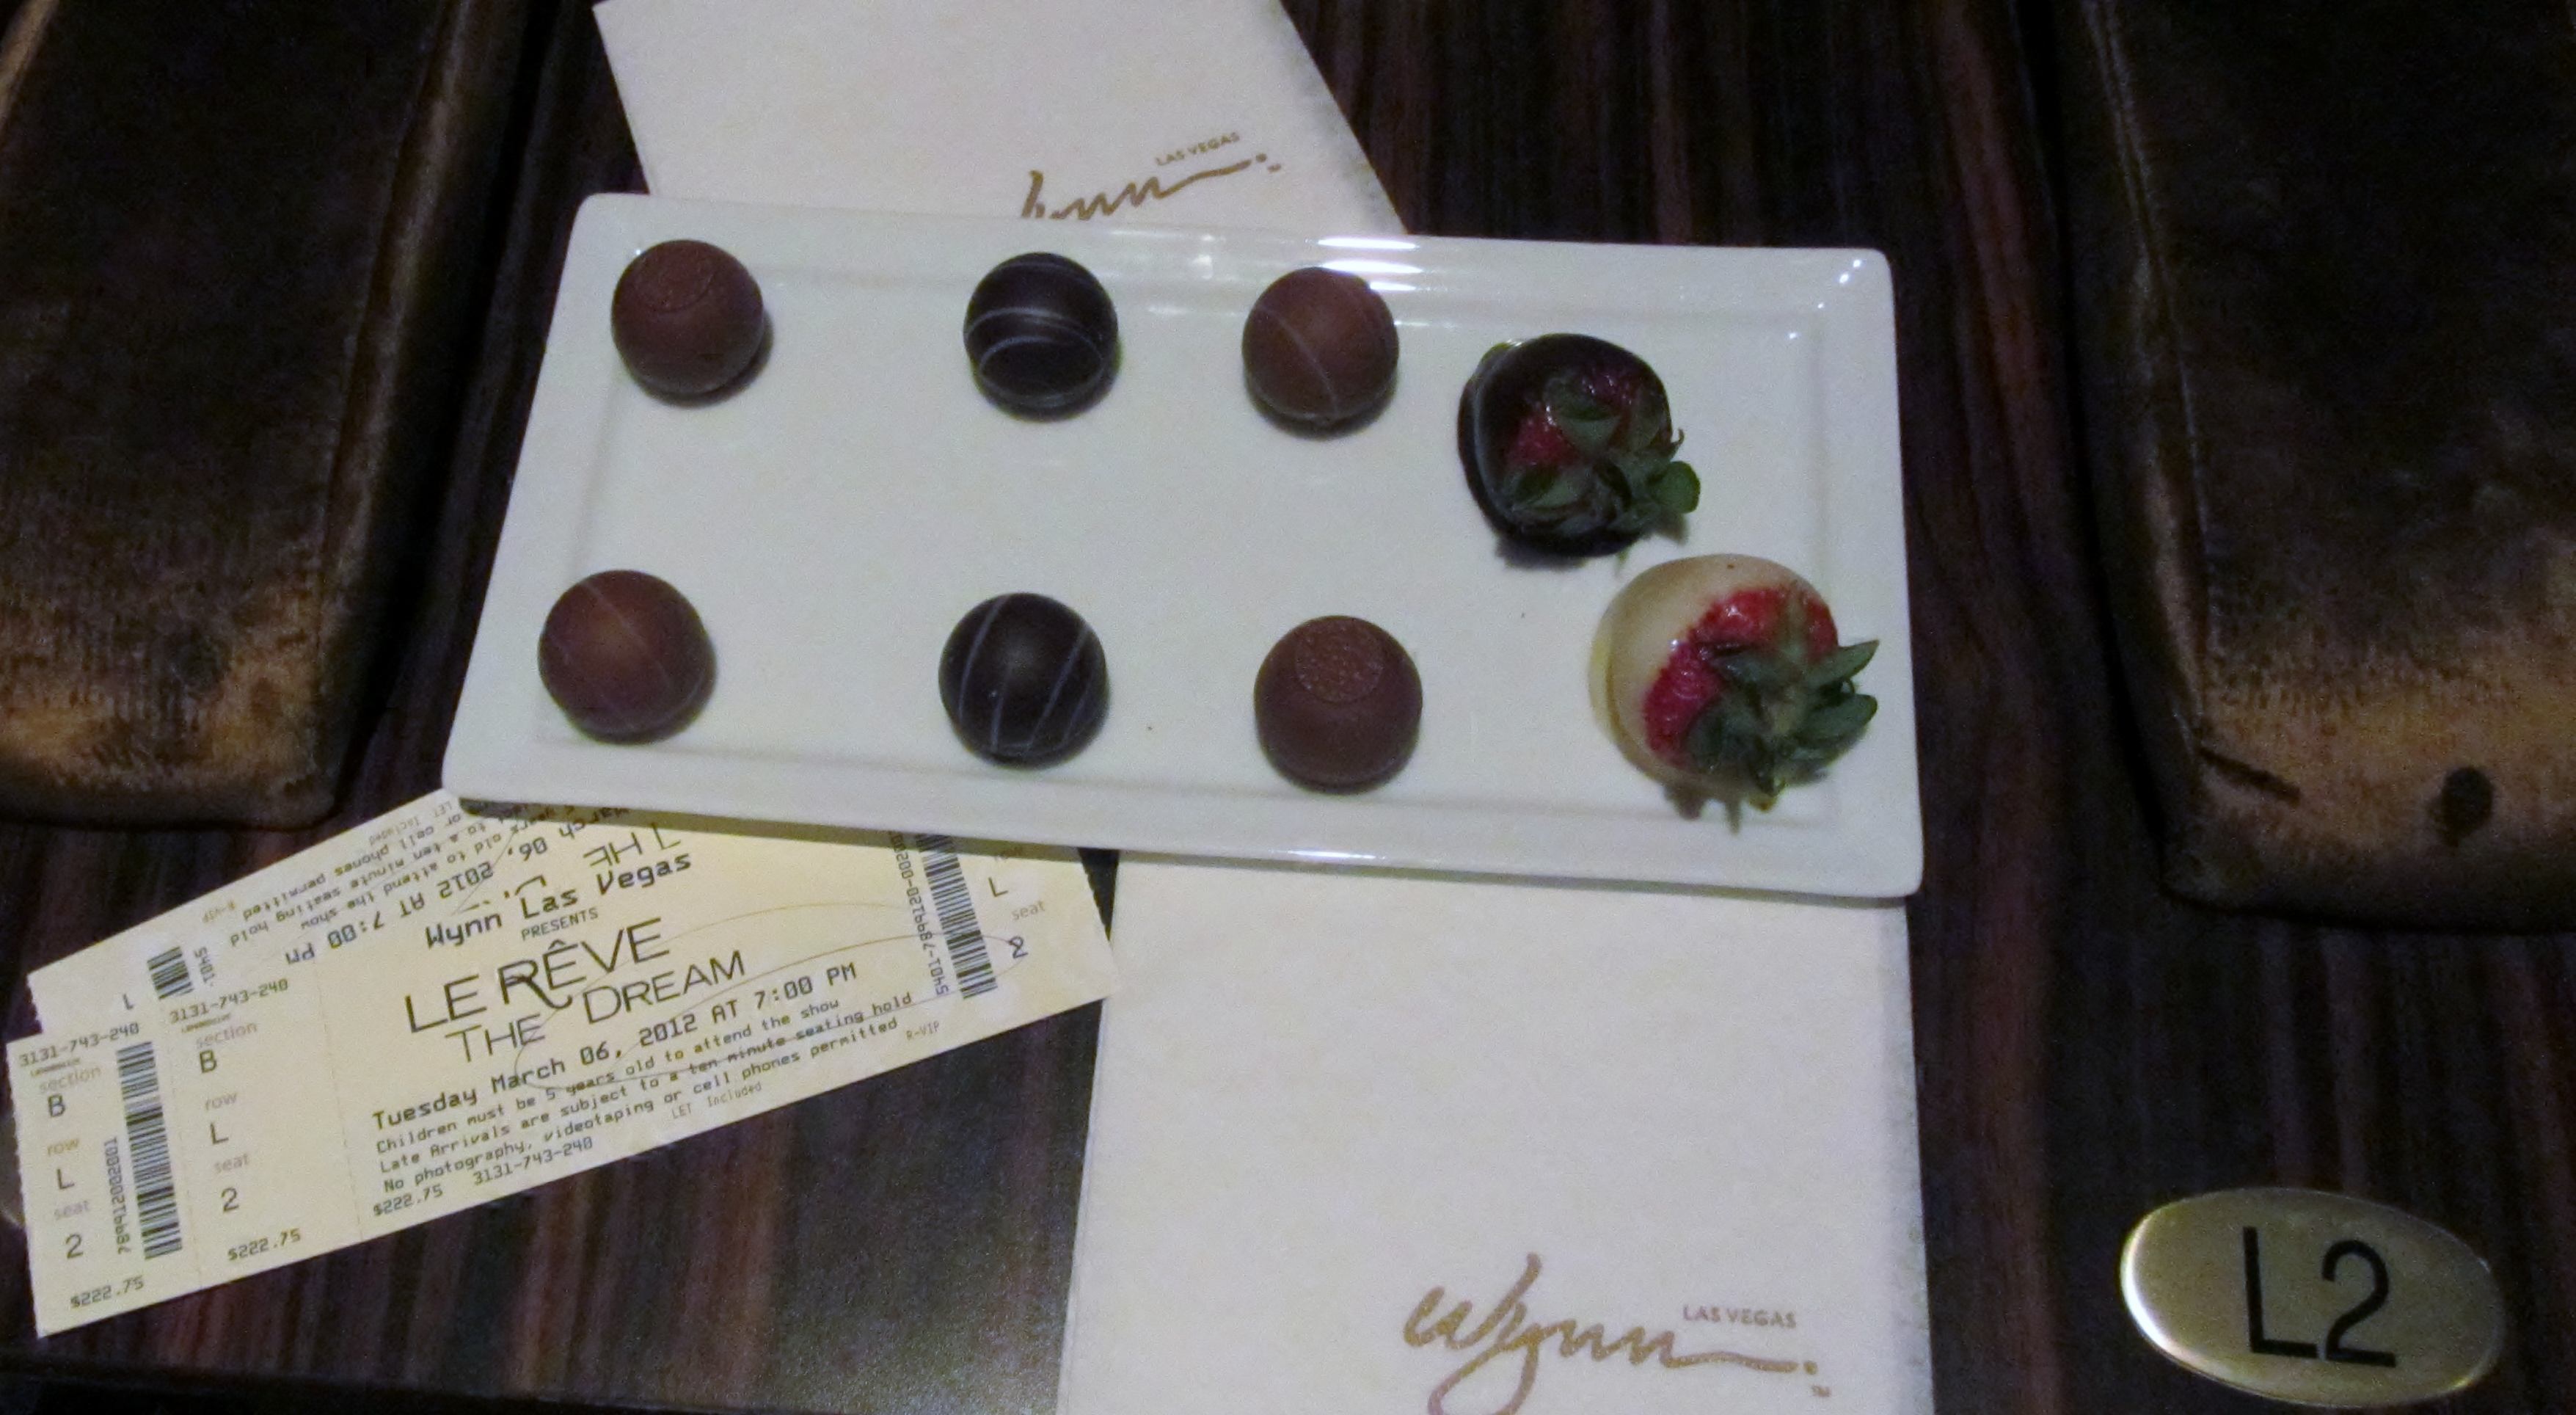 Las Vegas Wynn Le Reve The Dream VIP Indulgence Package Chocolate Covered Strawberries and Truffle